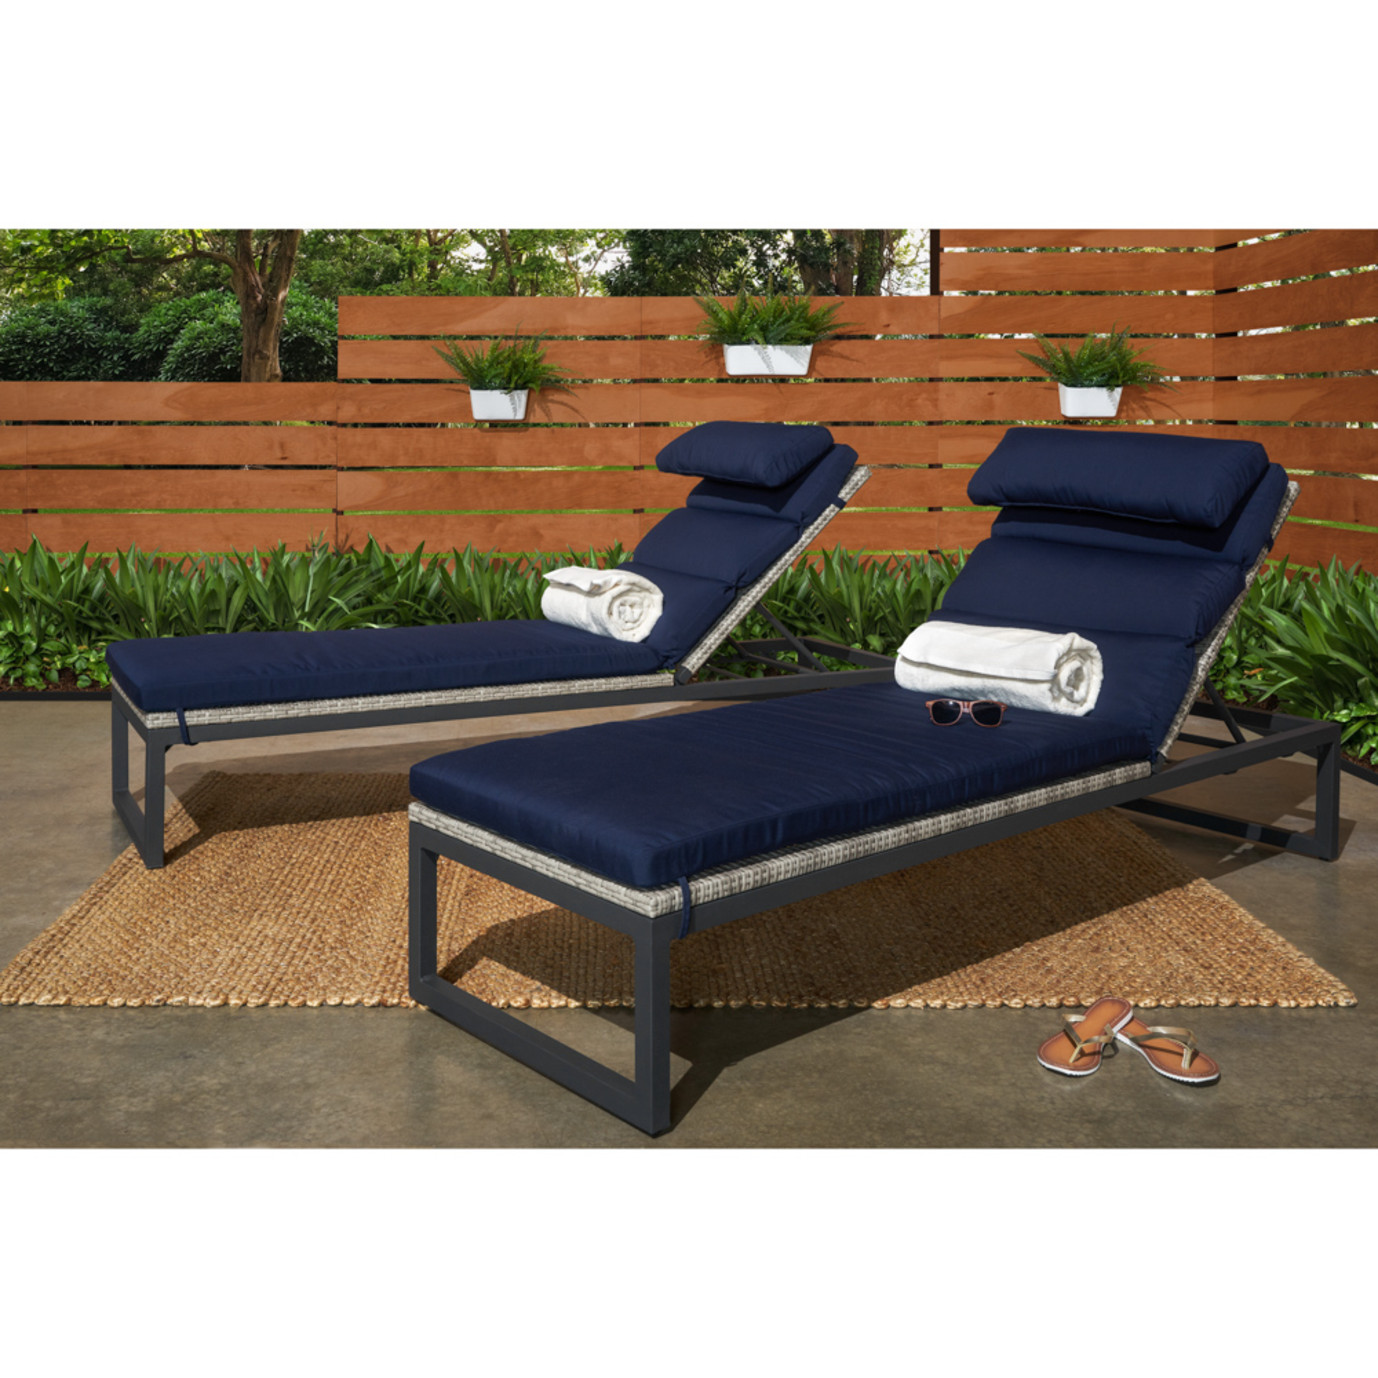 Milo™ Grey Chaise Lounges - Navy Blue